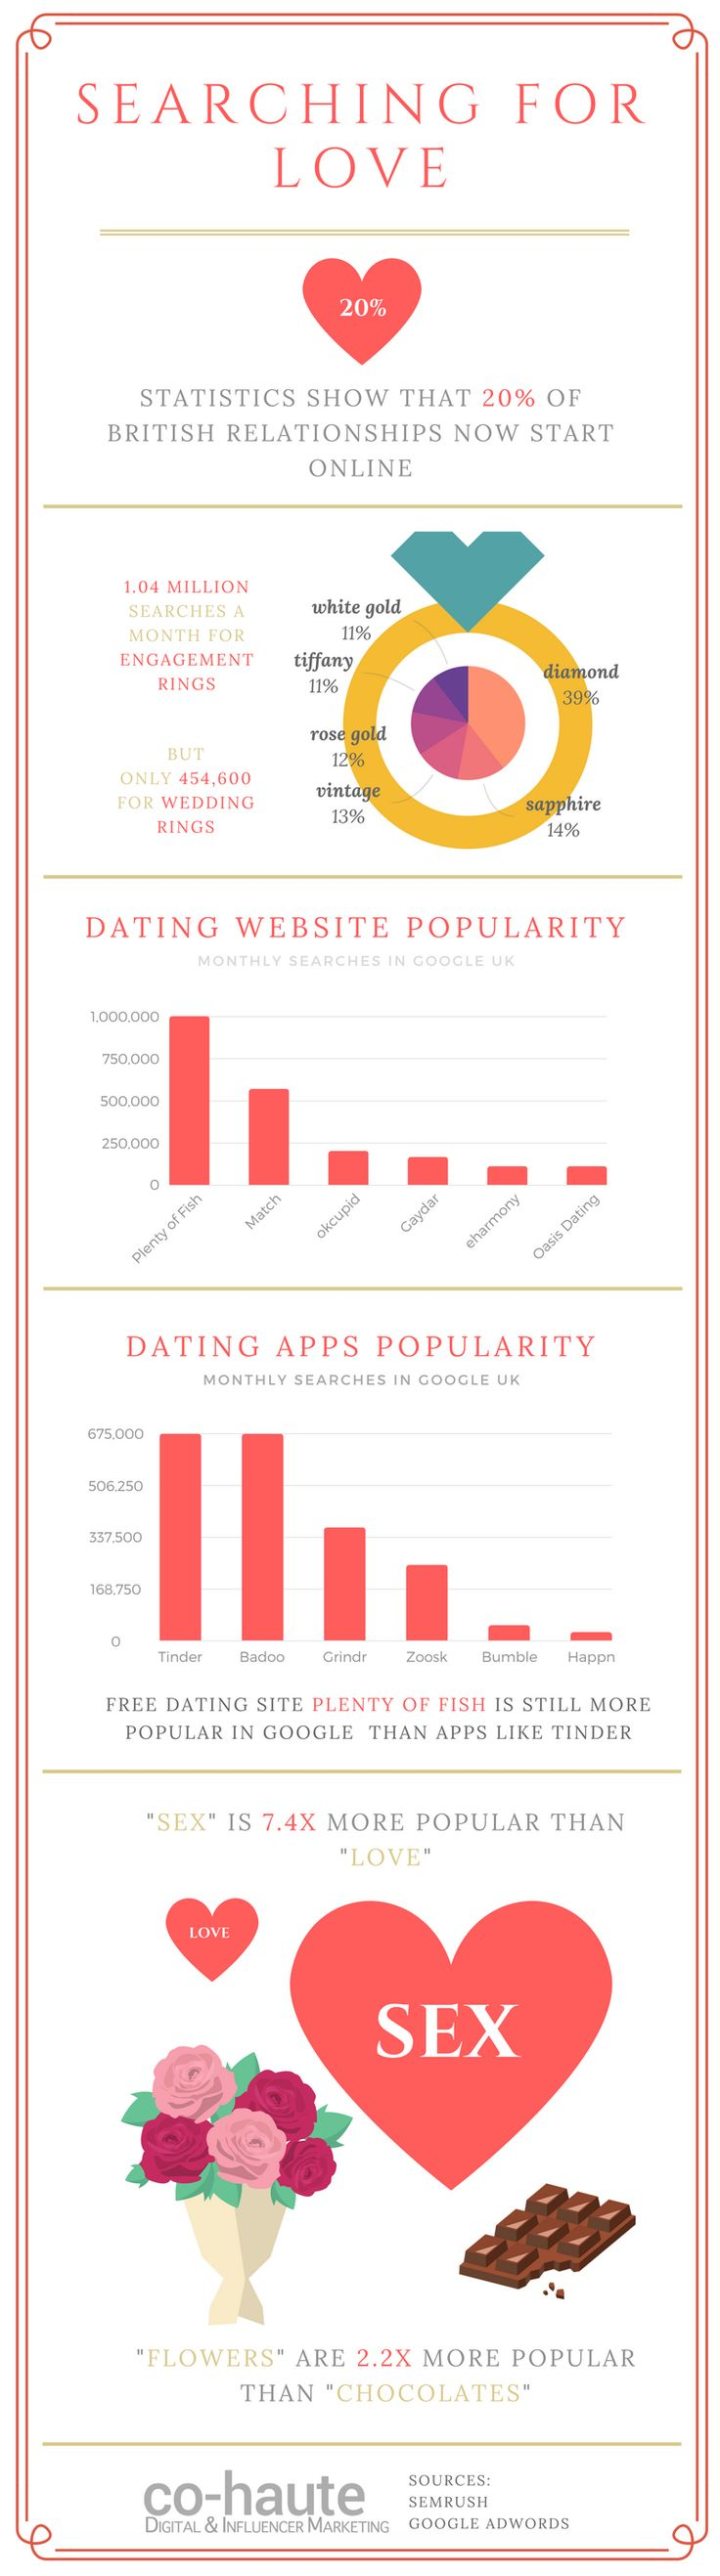 catchy headlines for dating